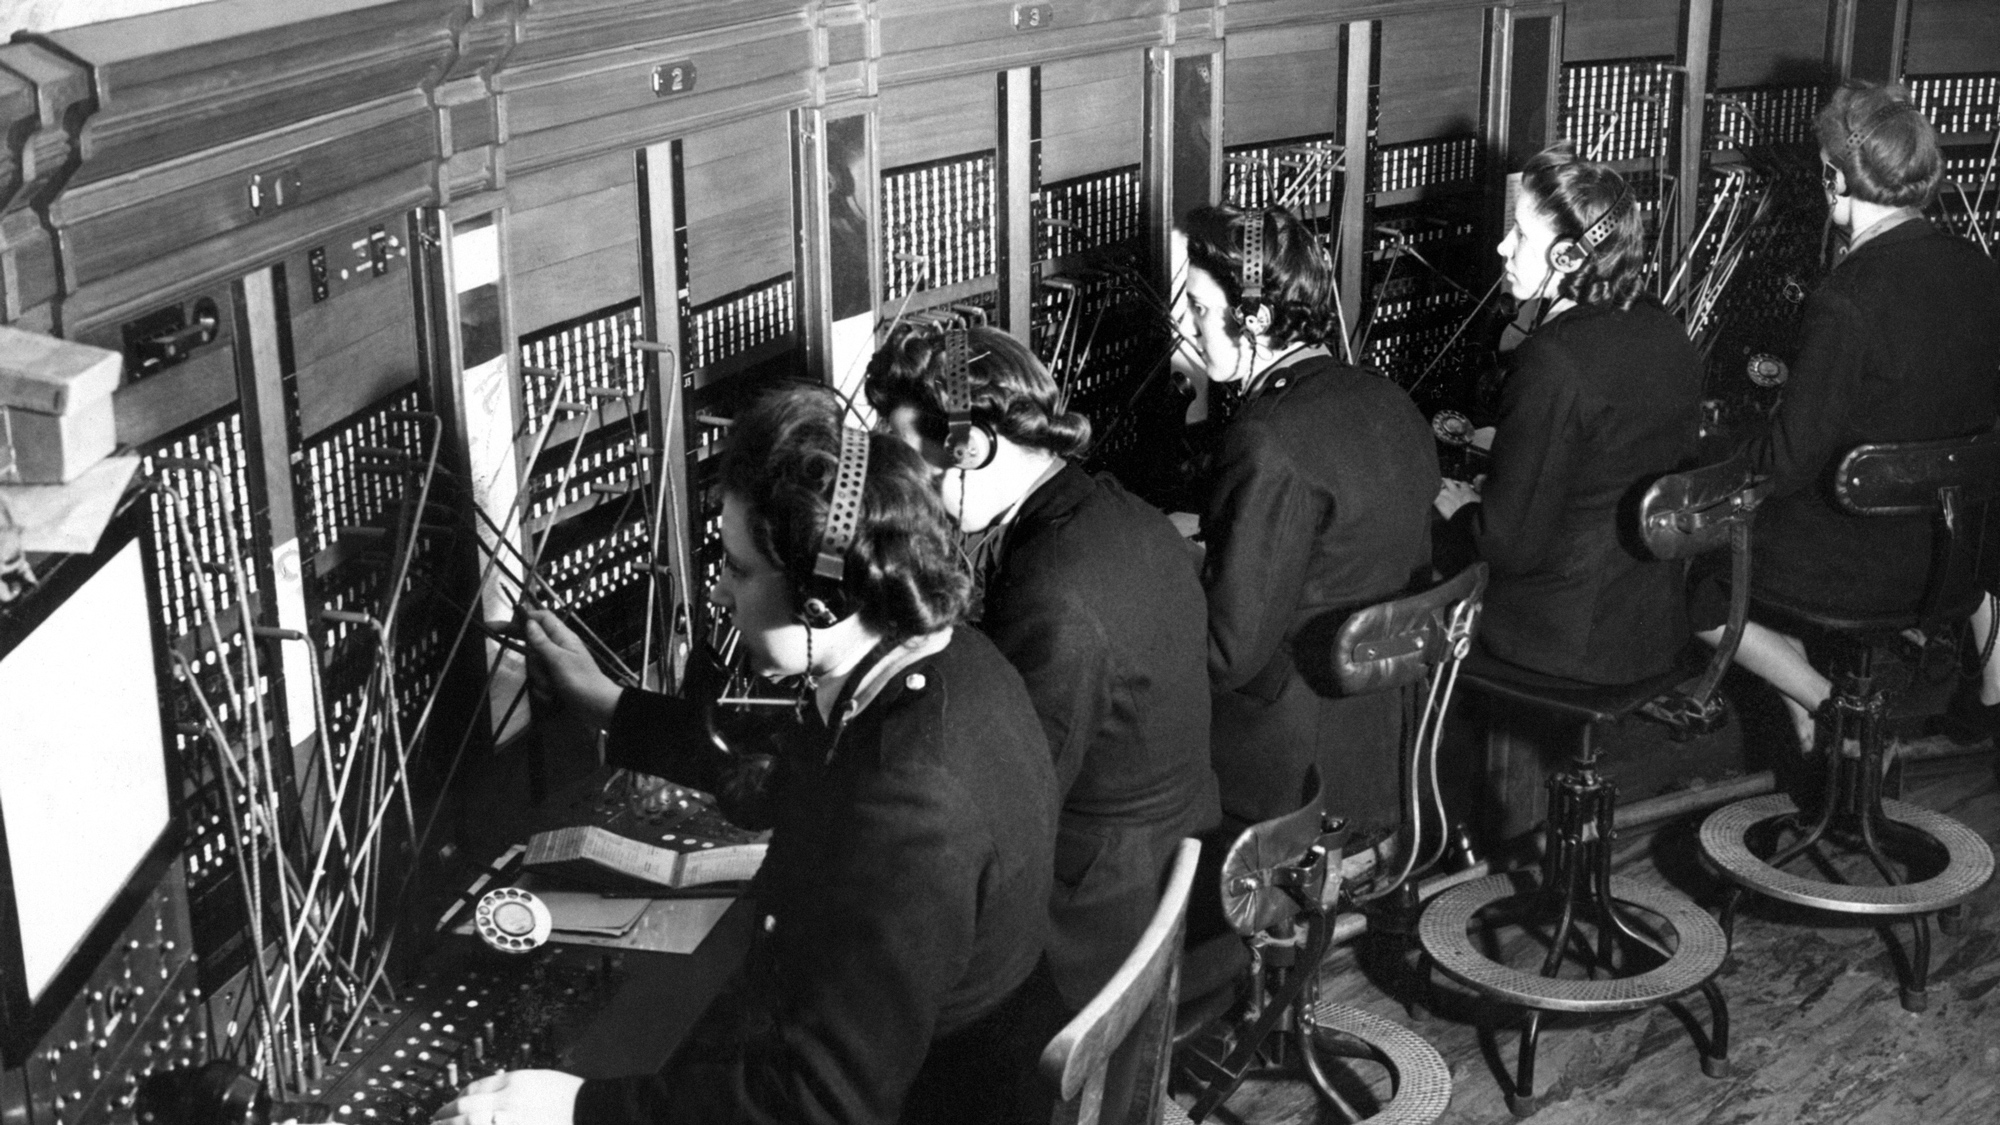 At the London Region fire control room, battle H.Q. of the National Fire Service. In the fight against the fire attacks by the Luftwaffe on London, the course of the raid is followed by telephone reports from all over the Metropolis. Reports of fires and the progress of the raiding are plotted on large scale maps and movement of firefighting reinforcements is ordered accordingly. Switchboard operators in action in London March 20, 1944. This switchboard is the nerve centre through which the operations officer receives reports of fires and the progress of raiding and through which the issues his orders to the areas where the fire battle is being fought. (AP Photo)